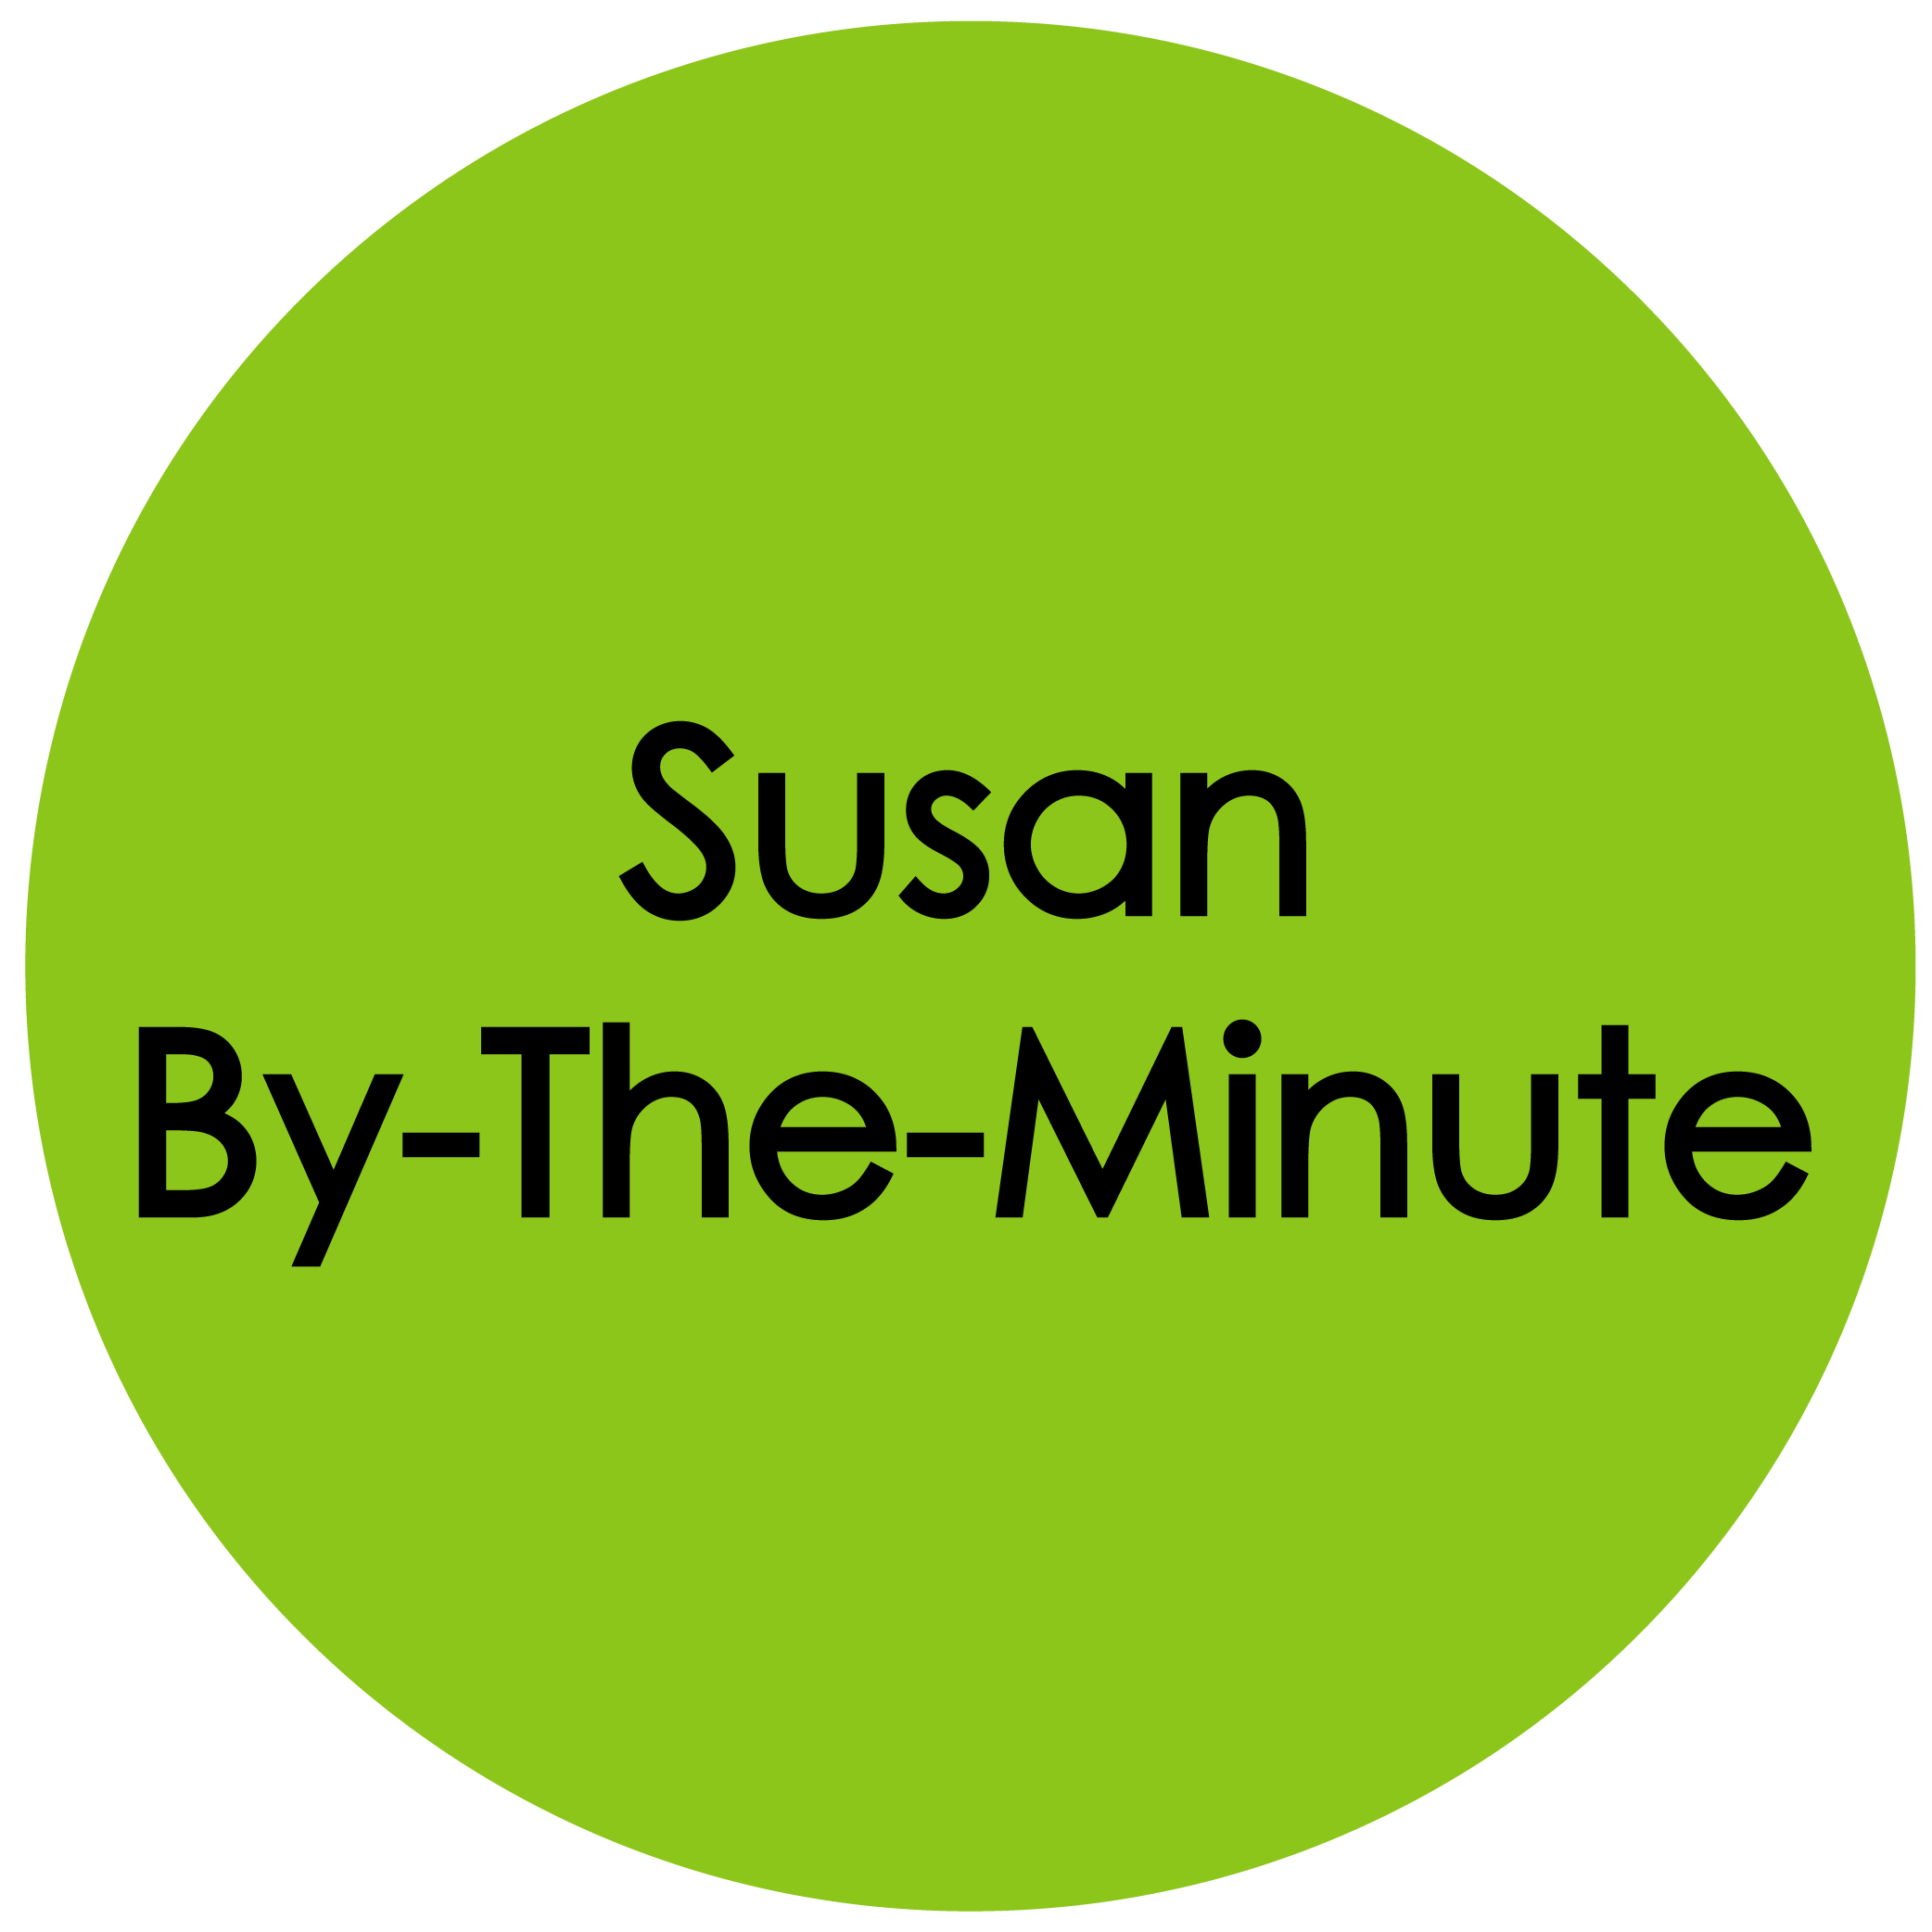 susan by the min button